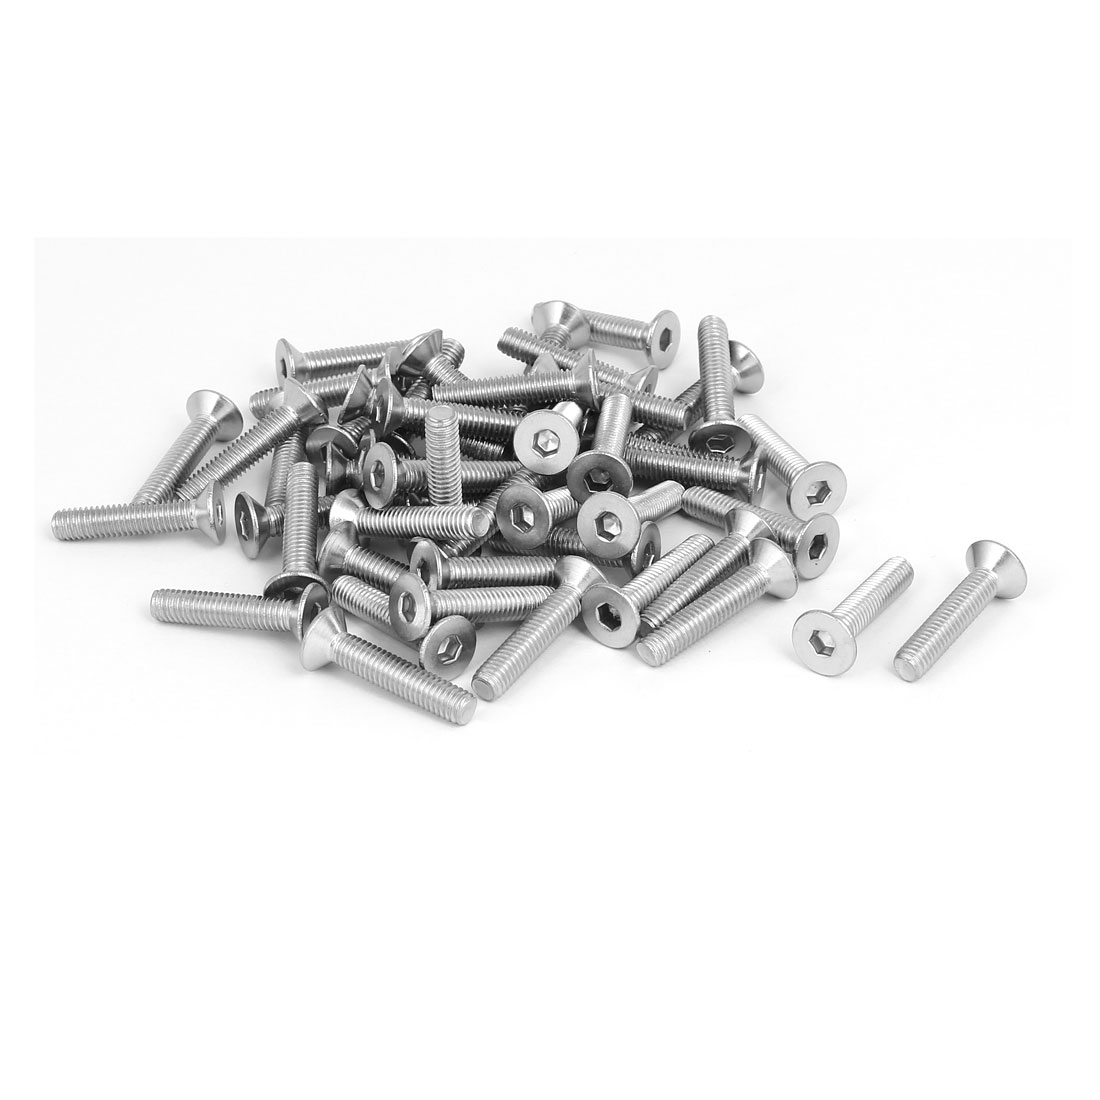 M6x30mm 304 Stainless Steel Flat Head Hex Socket Screws Fastener DIN7991 50pcs